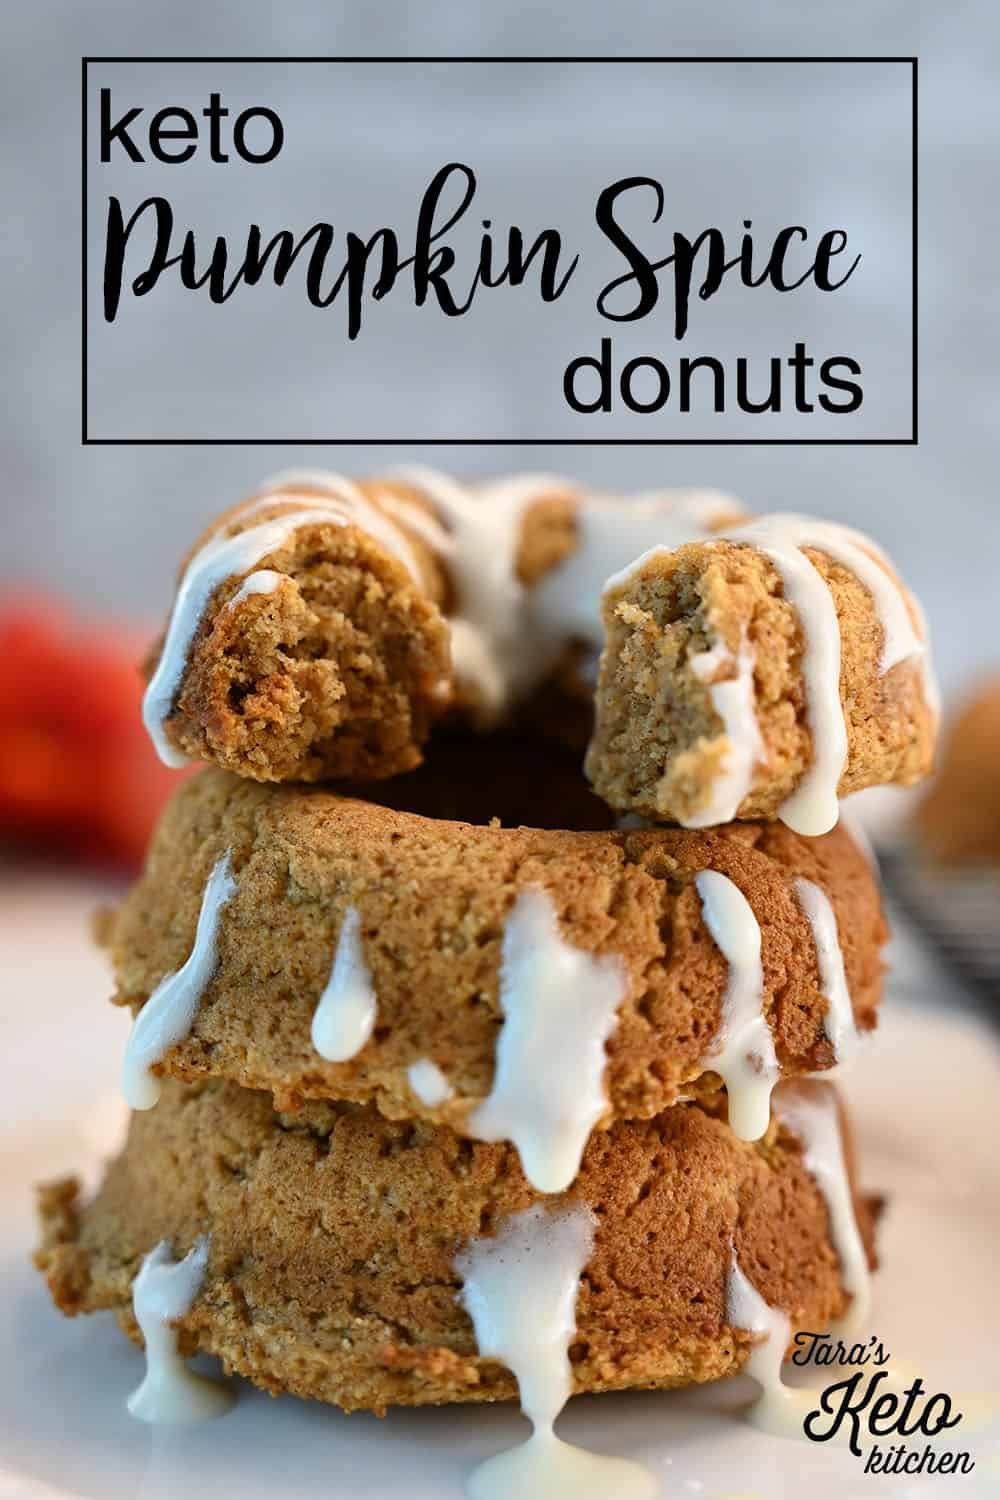 close up image of 3 Keto Pumpkin Spice Donuts with title for pinterest